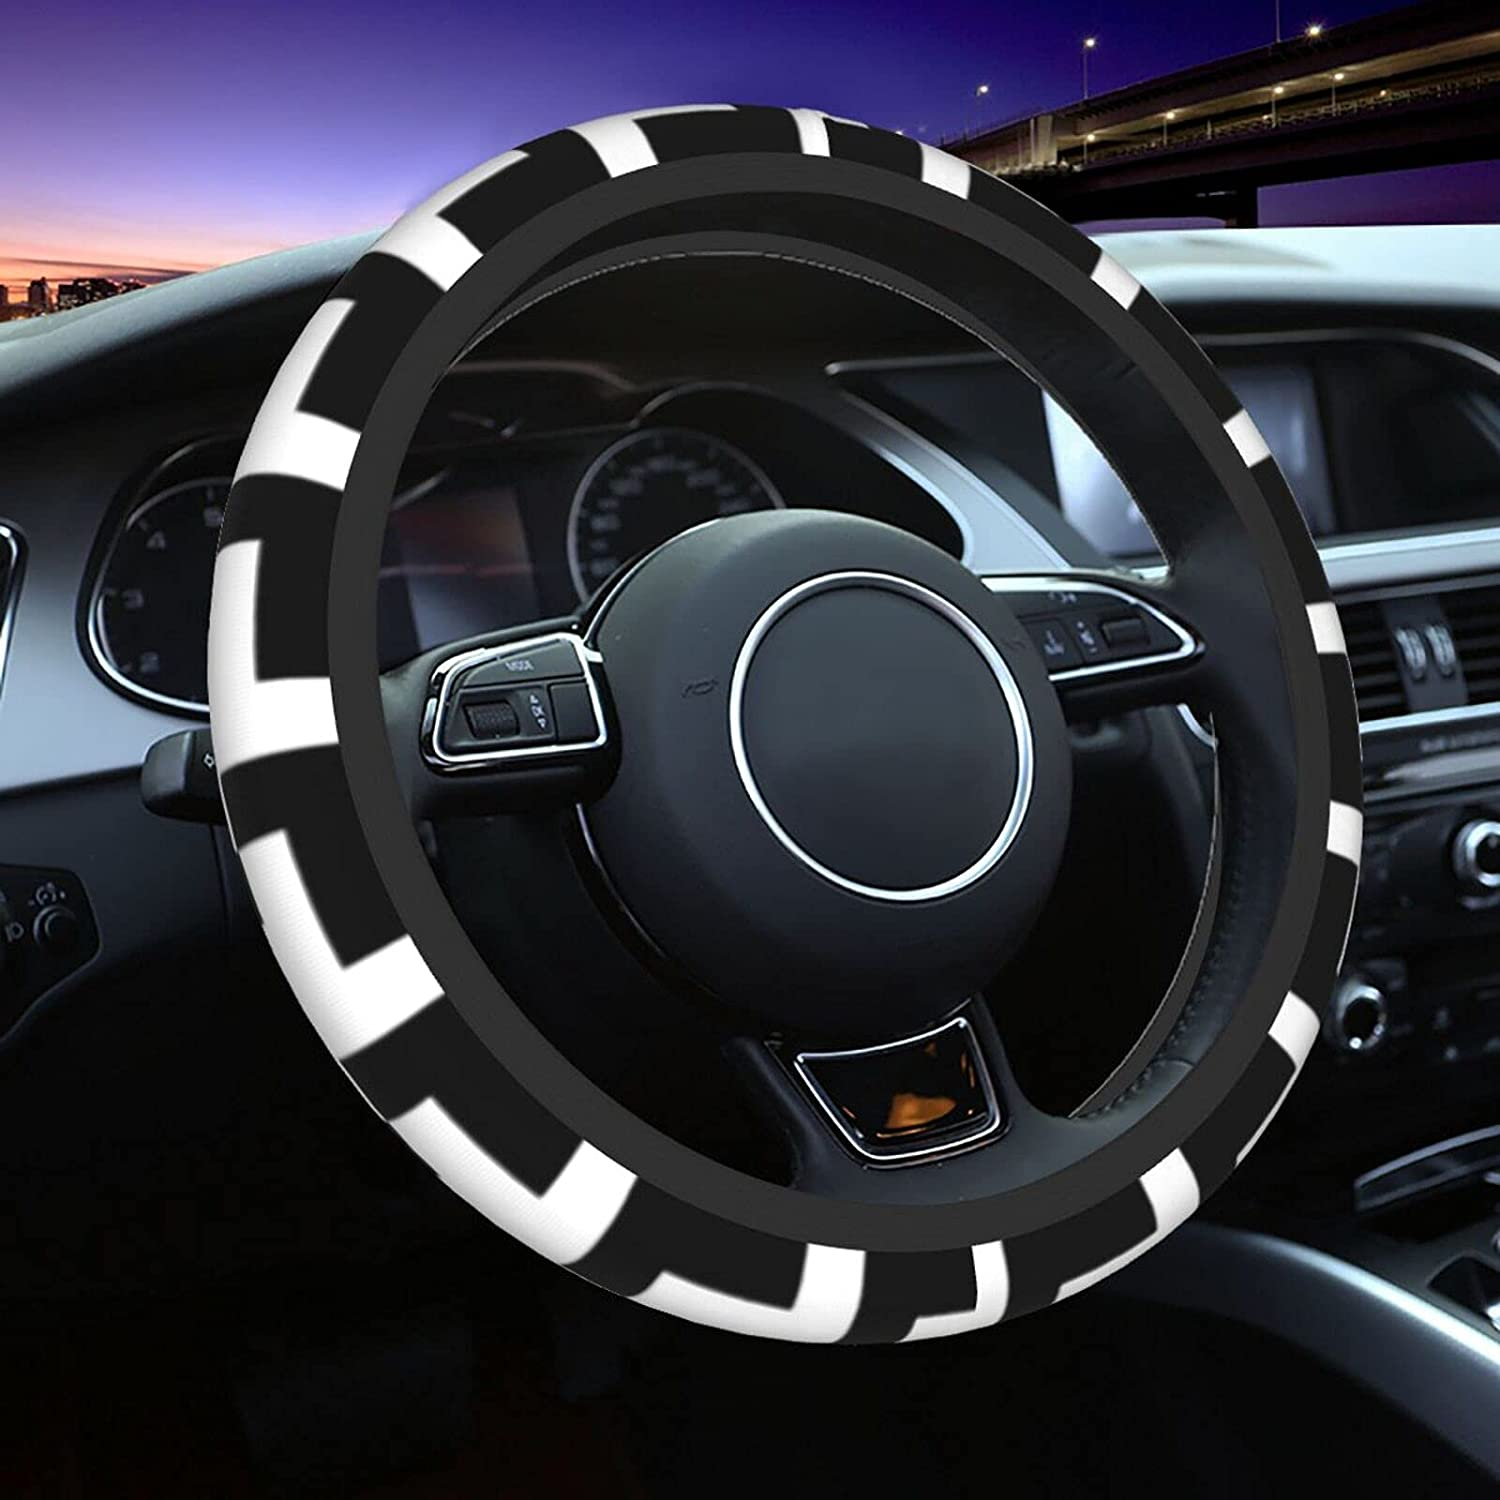 Black and White Distort Checkered Bombing free shipping Cover Wheel Ranking TOP18 Universal Steering